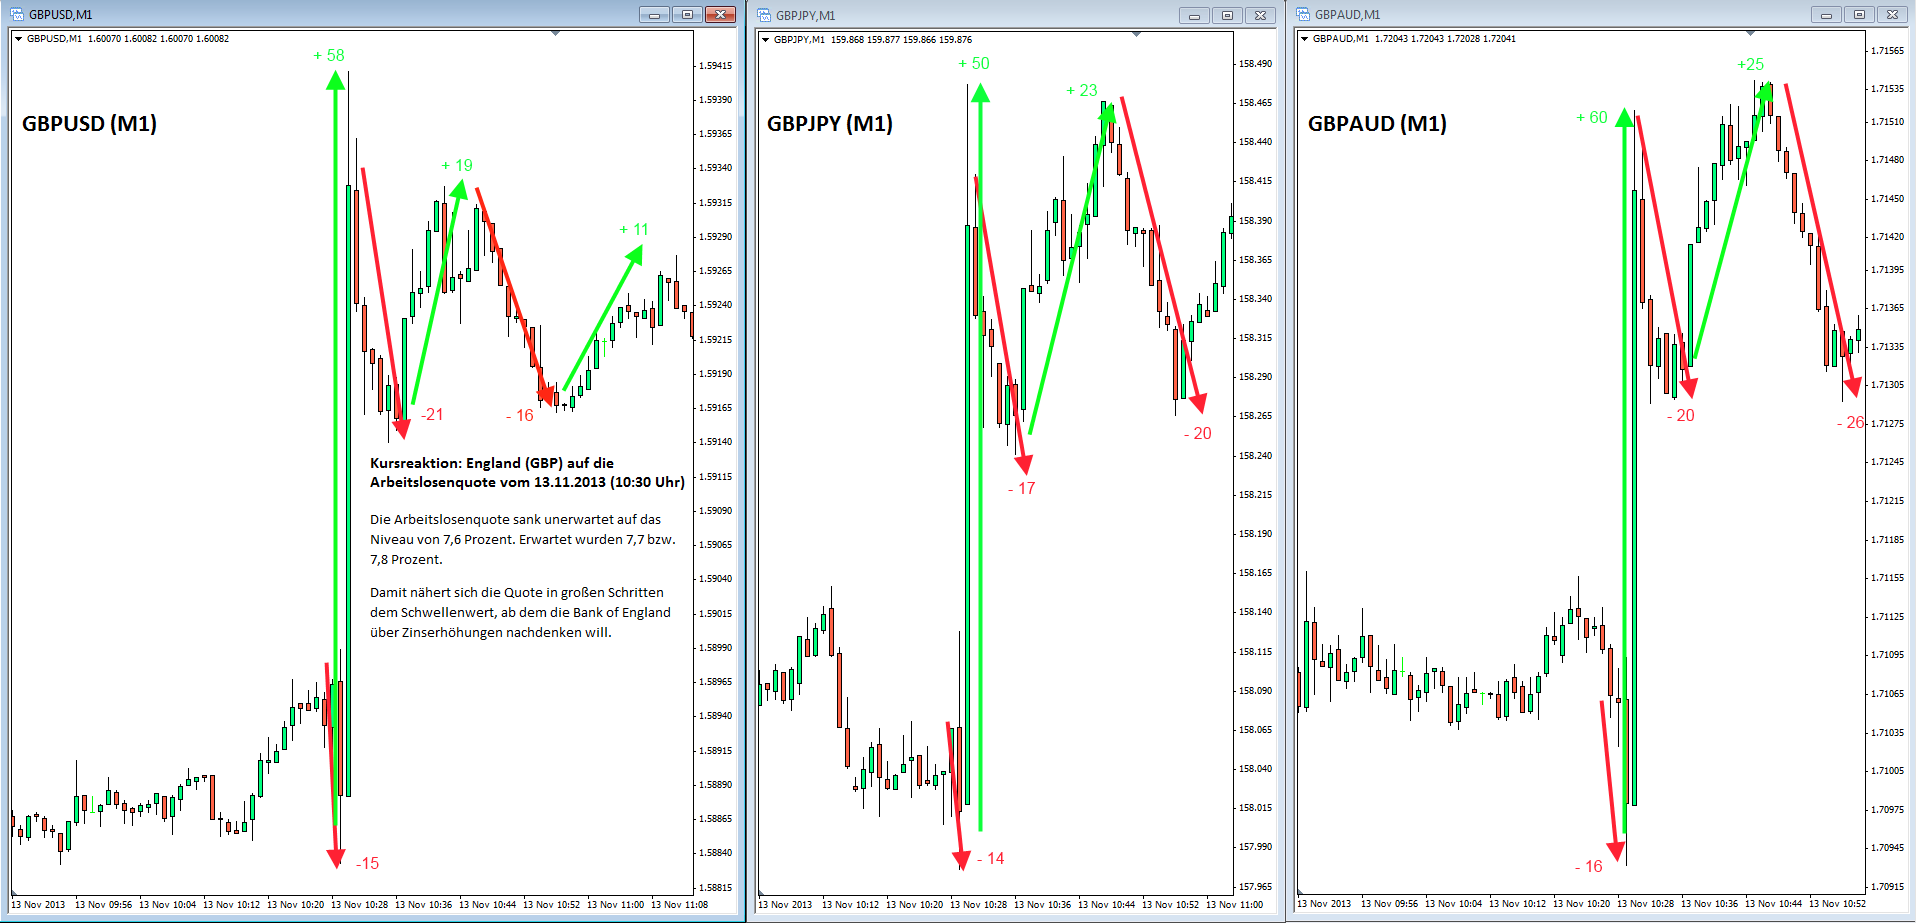 Kursreaktion_England_Arbeitslosenquote-GBPUSD-GBPJPY-GBPAUD-13.11.2013-1030